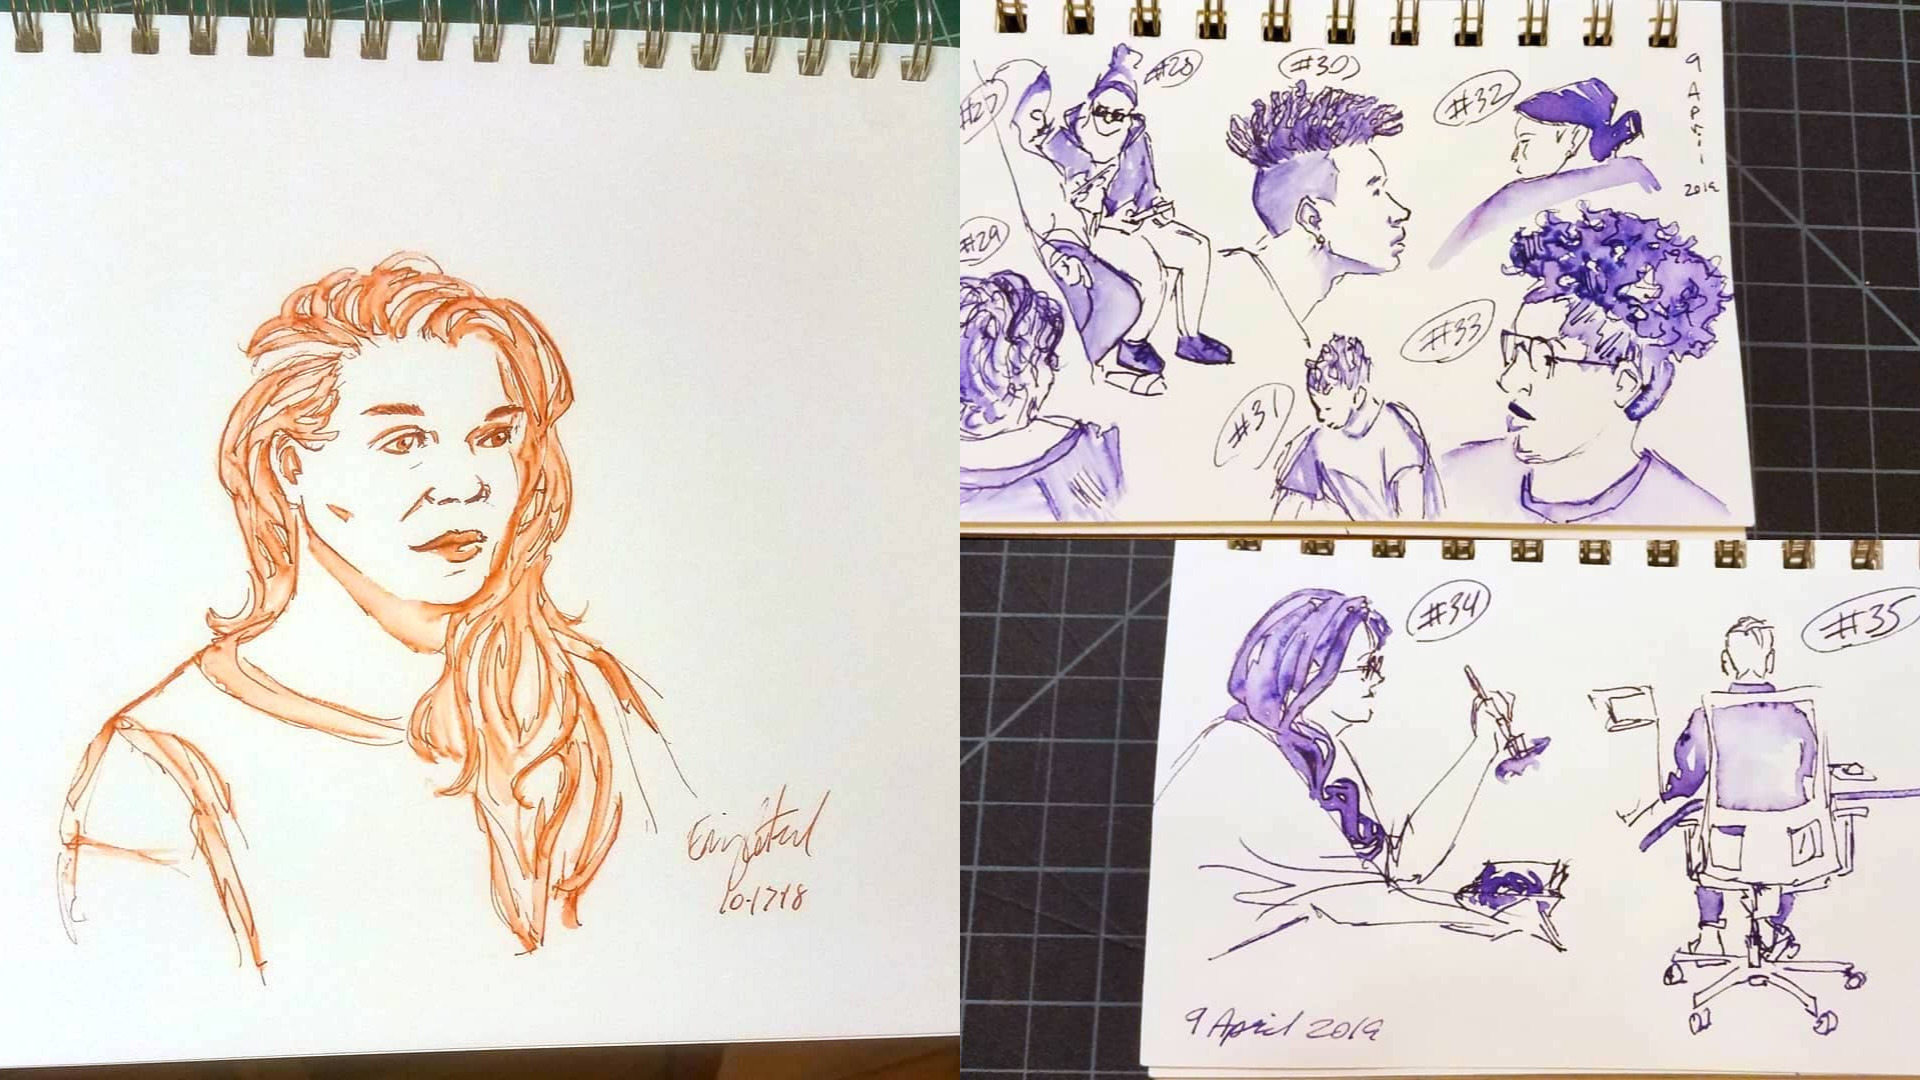 Sketching People with Fountain Pen - Sunday, August 25, 1–4 PM / Instructor: Emmett Catedral